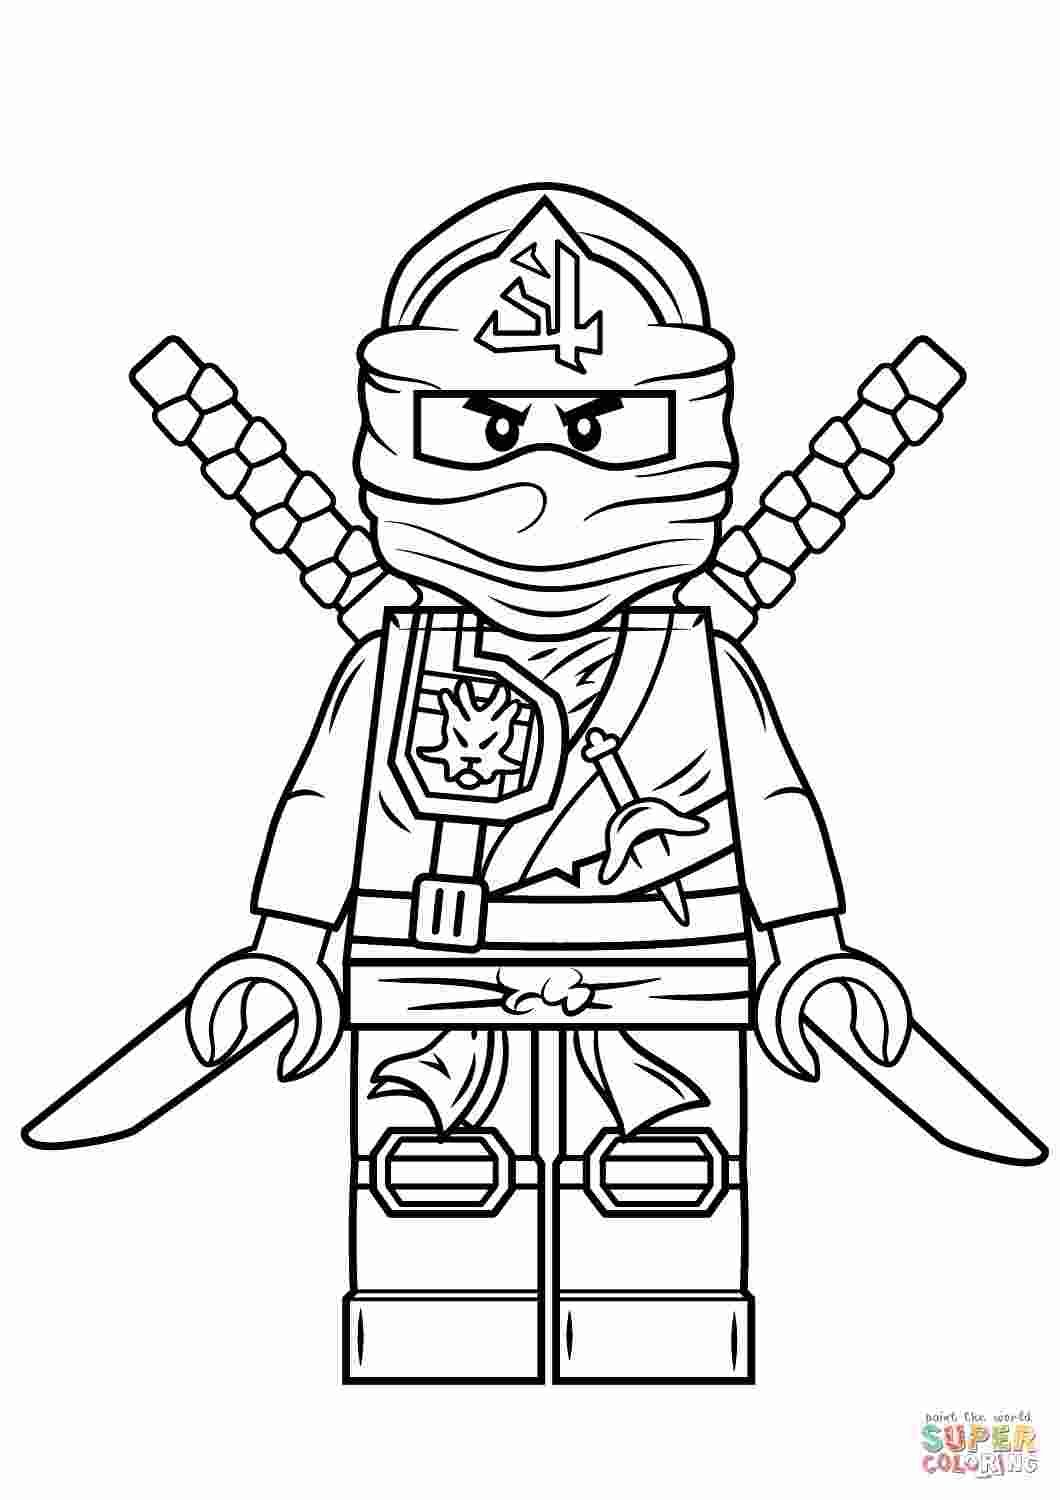 Hm Coloring Pages Ninjago Golden Lego Coloring Pages Lego Movie Coloring Pages Ninjago Coloring Pages